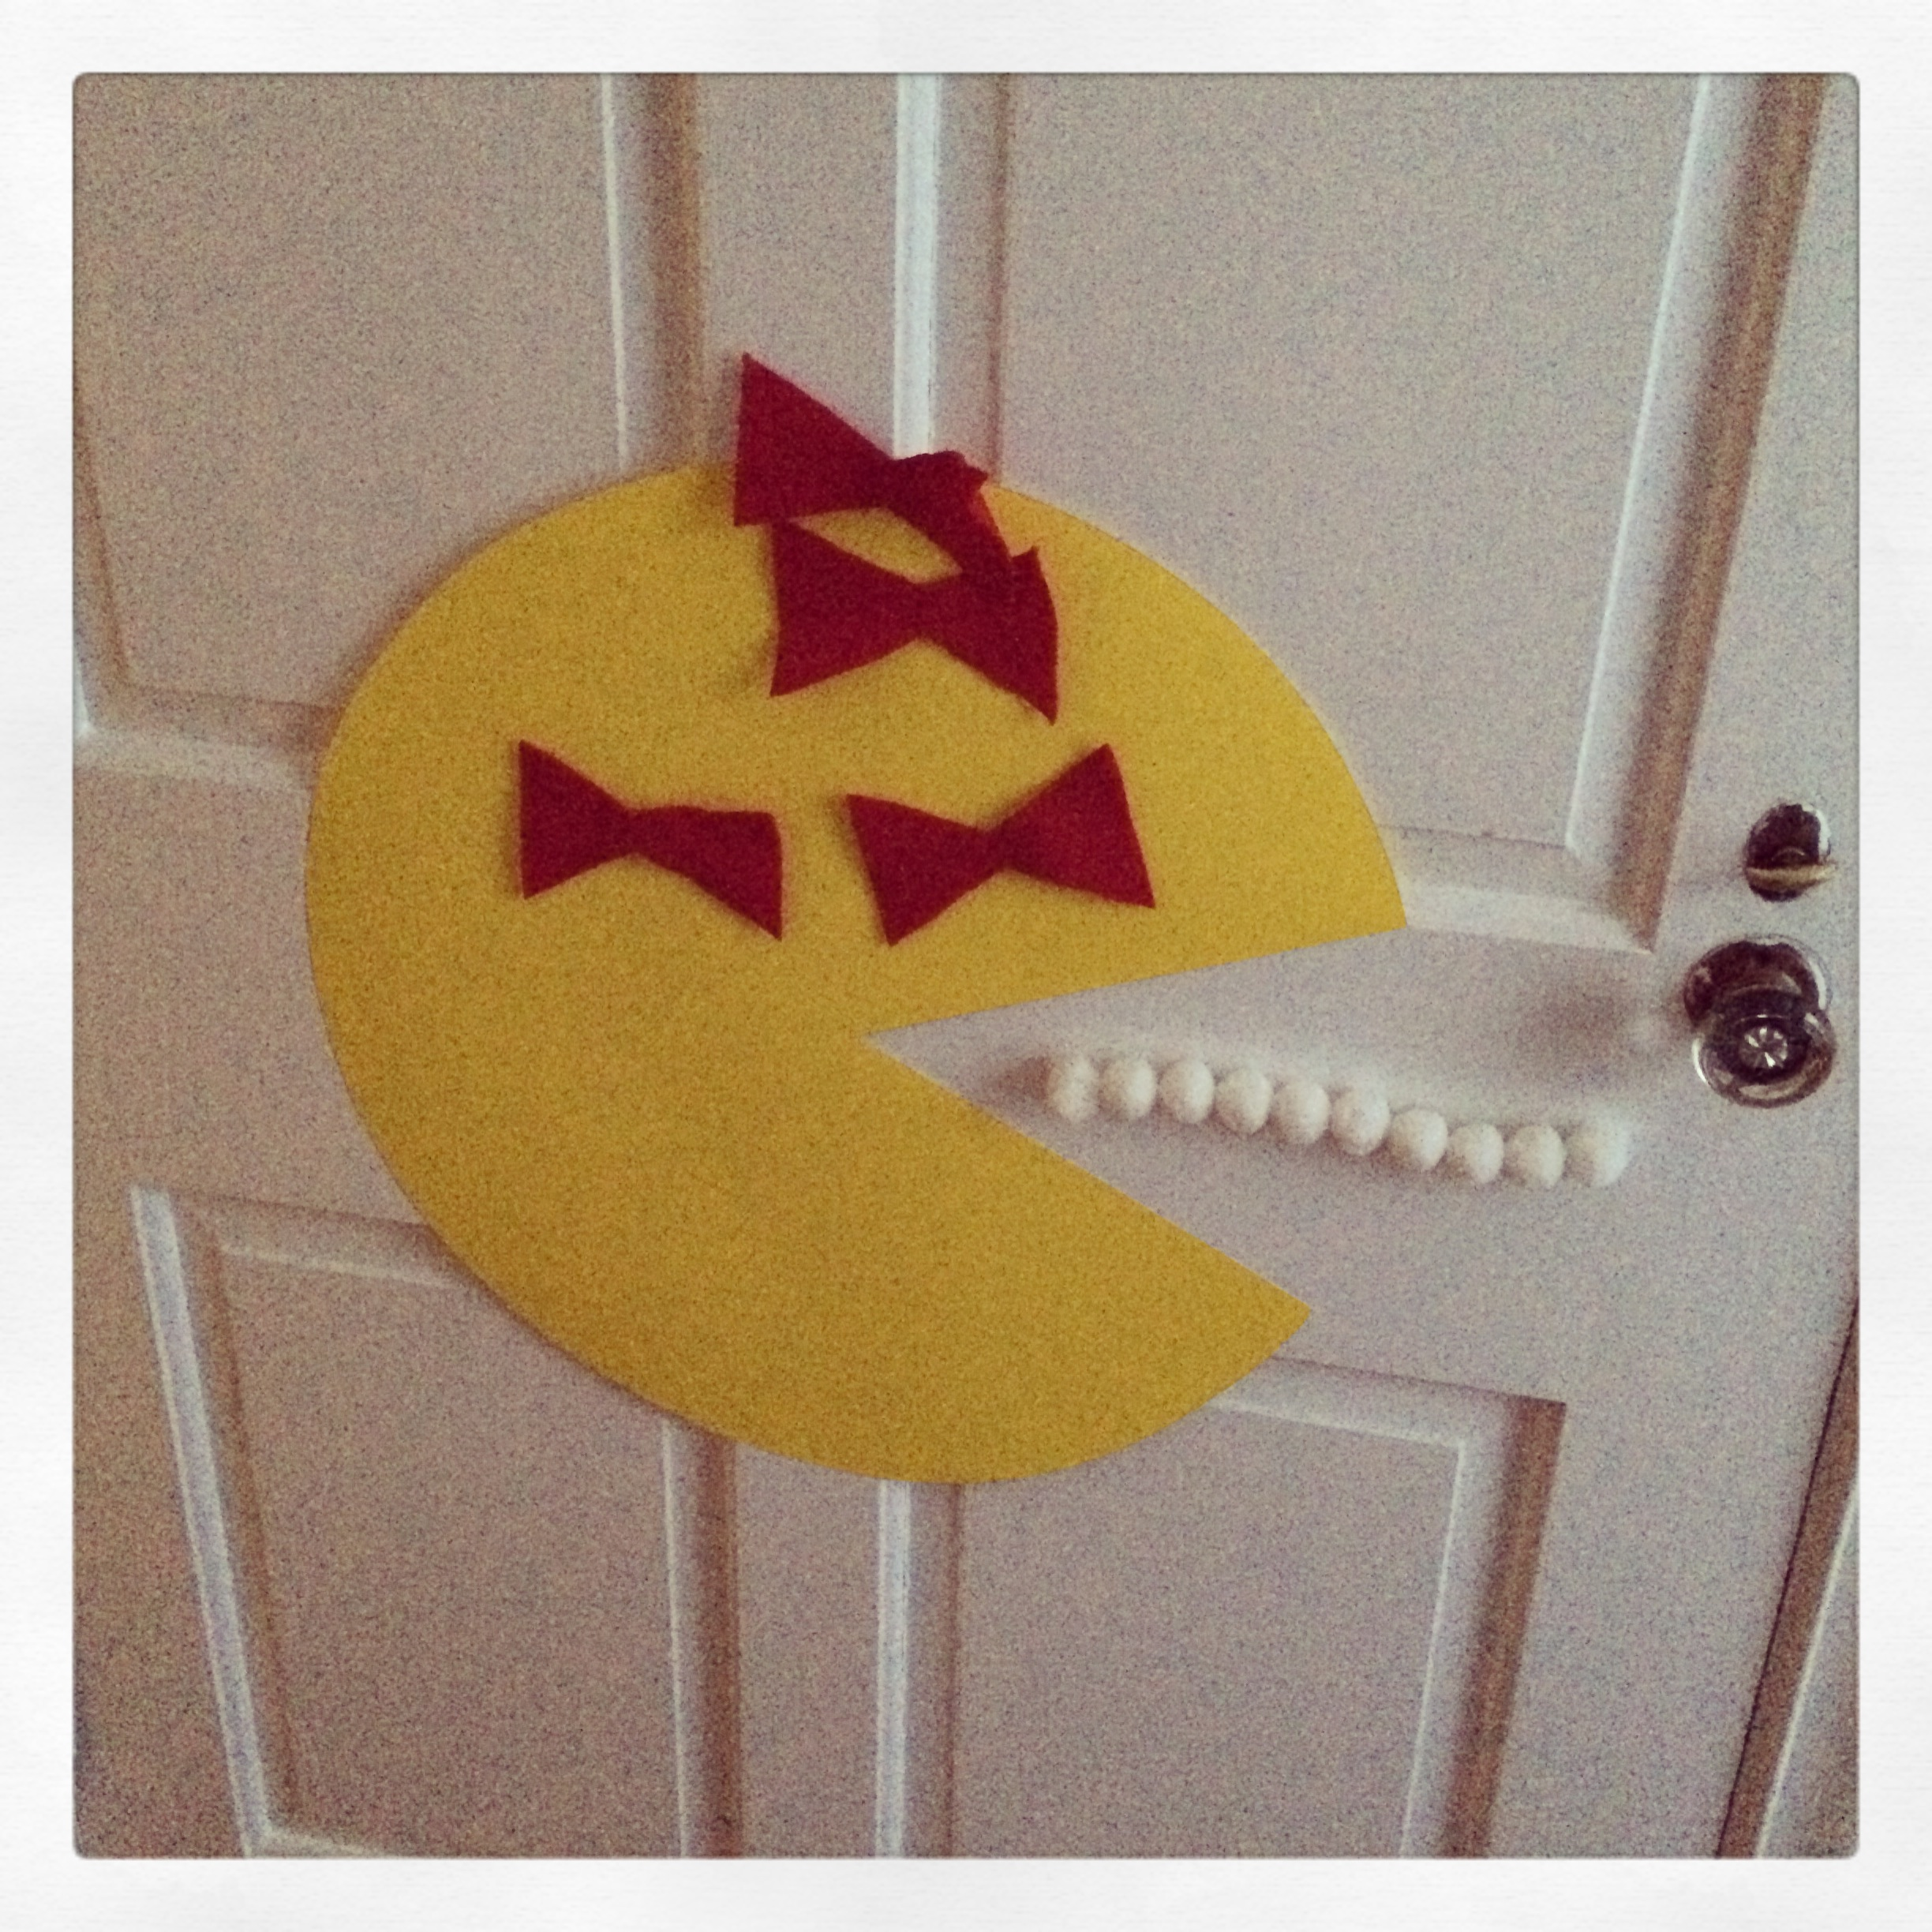 Pin the bow on Ms. Pacman